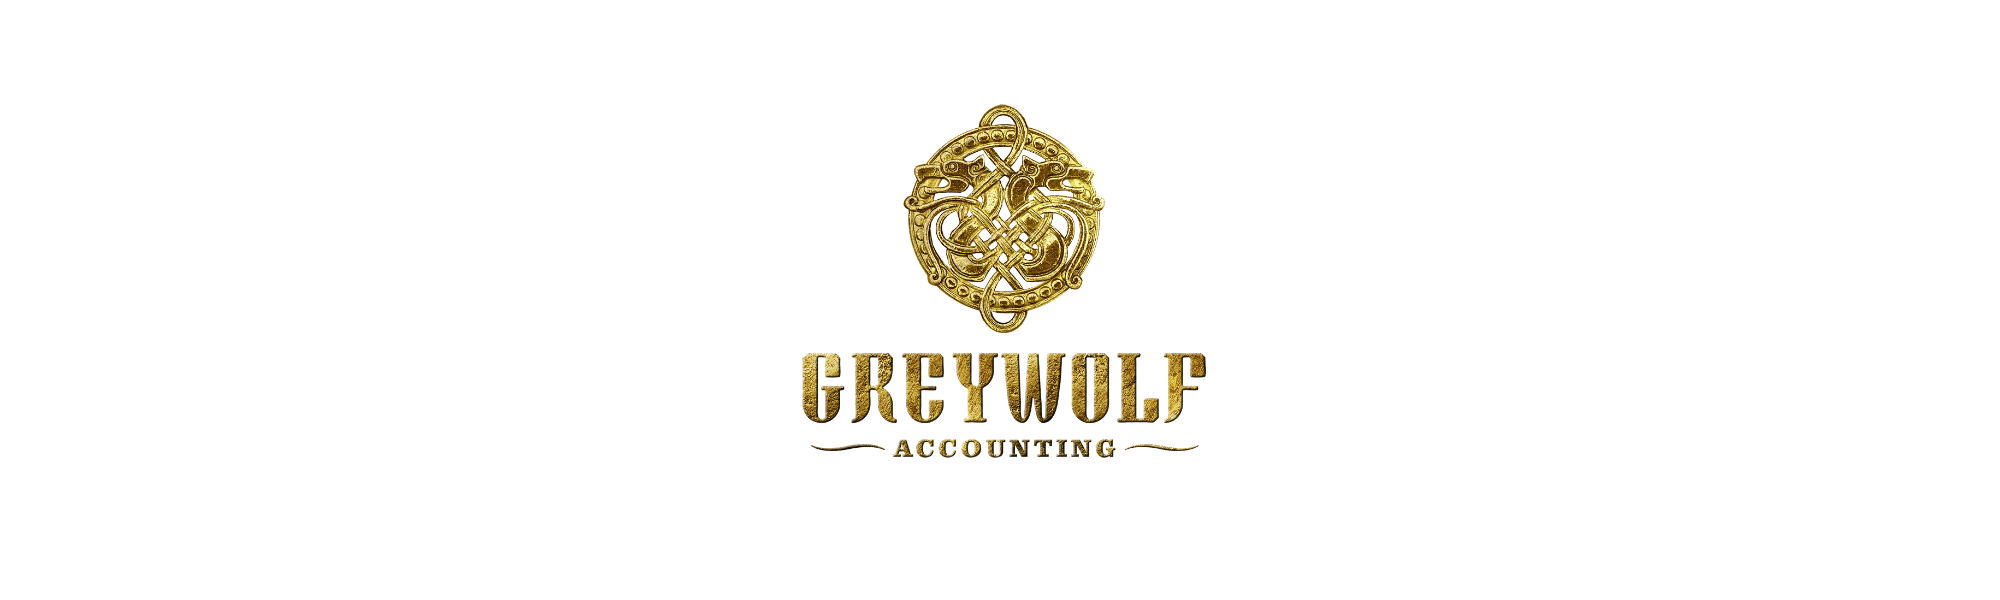 GREYWOLF ACCOUNTING